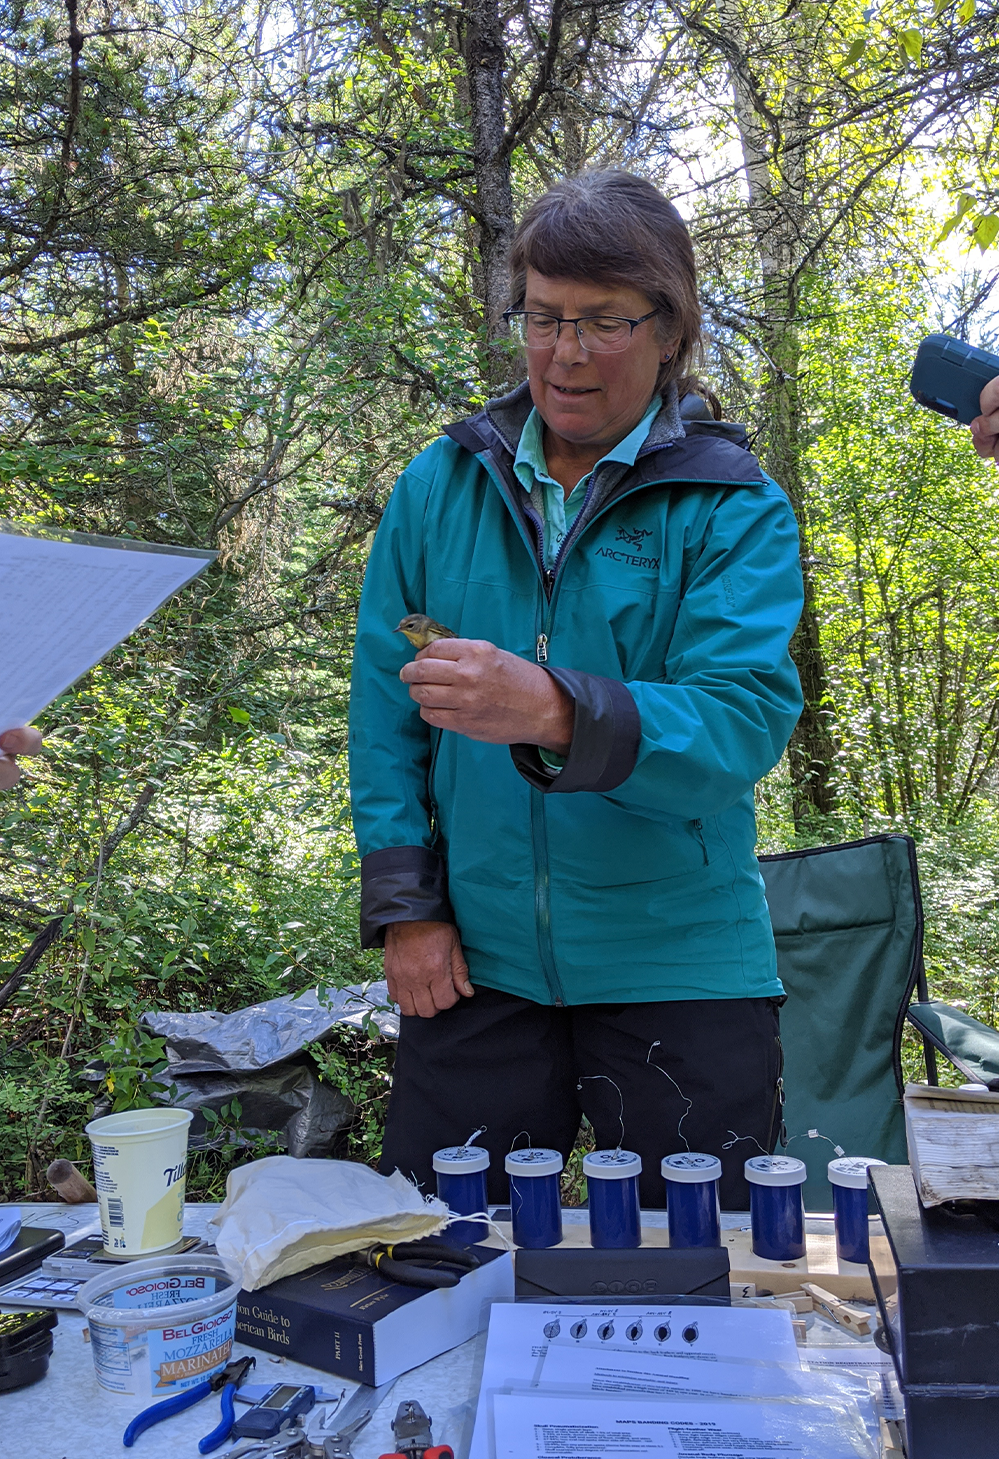 A researcher holds a small bird while studying birds in Glacier National Park